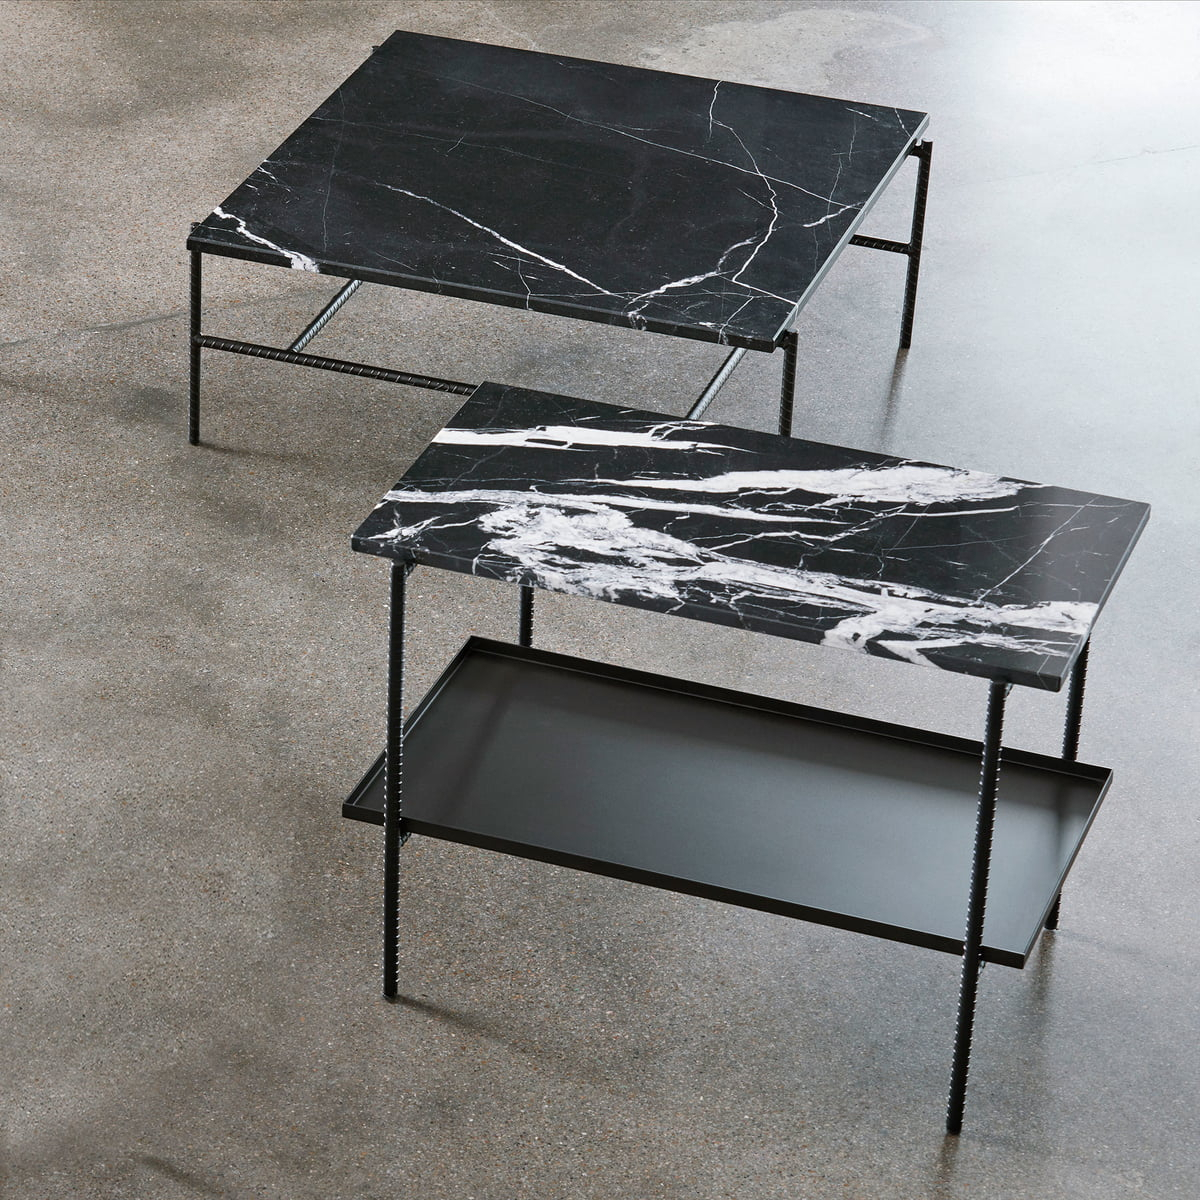 Hay - Rebar Coffee Table, 80 X 84 Cm, Marble / Black for Coffee Sign With Rebar Wall Decor (Image 9 of 30)